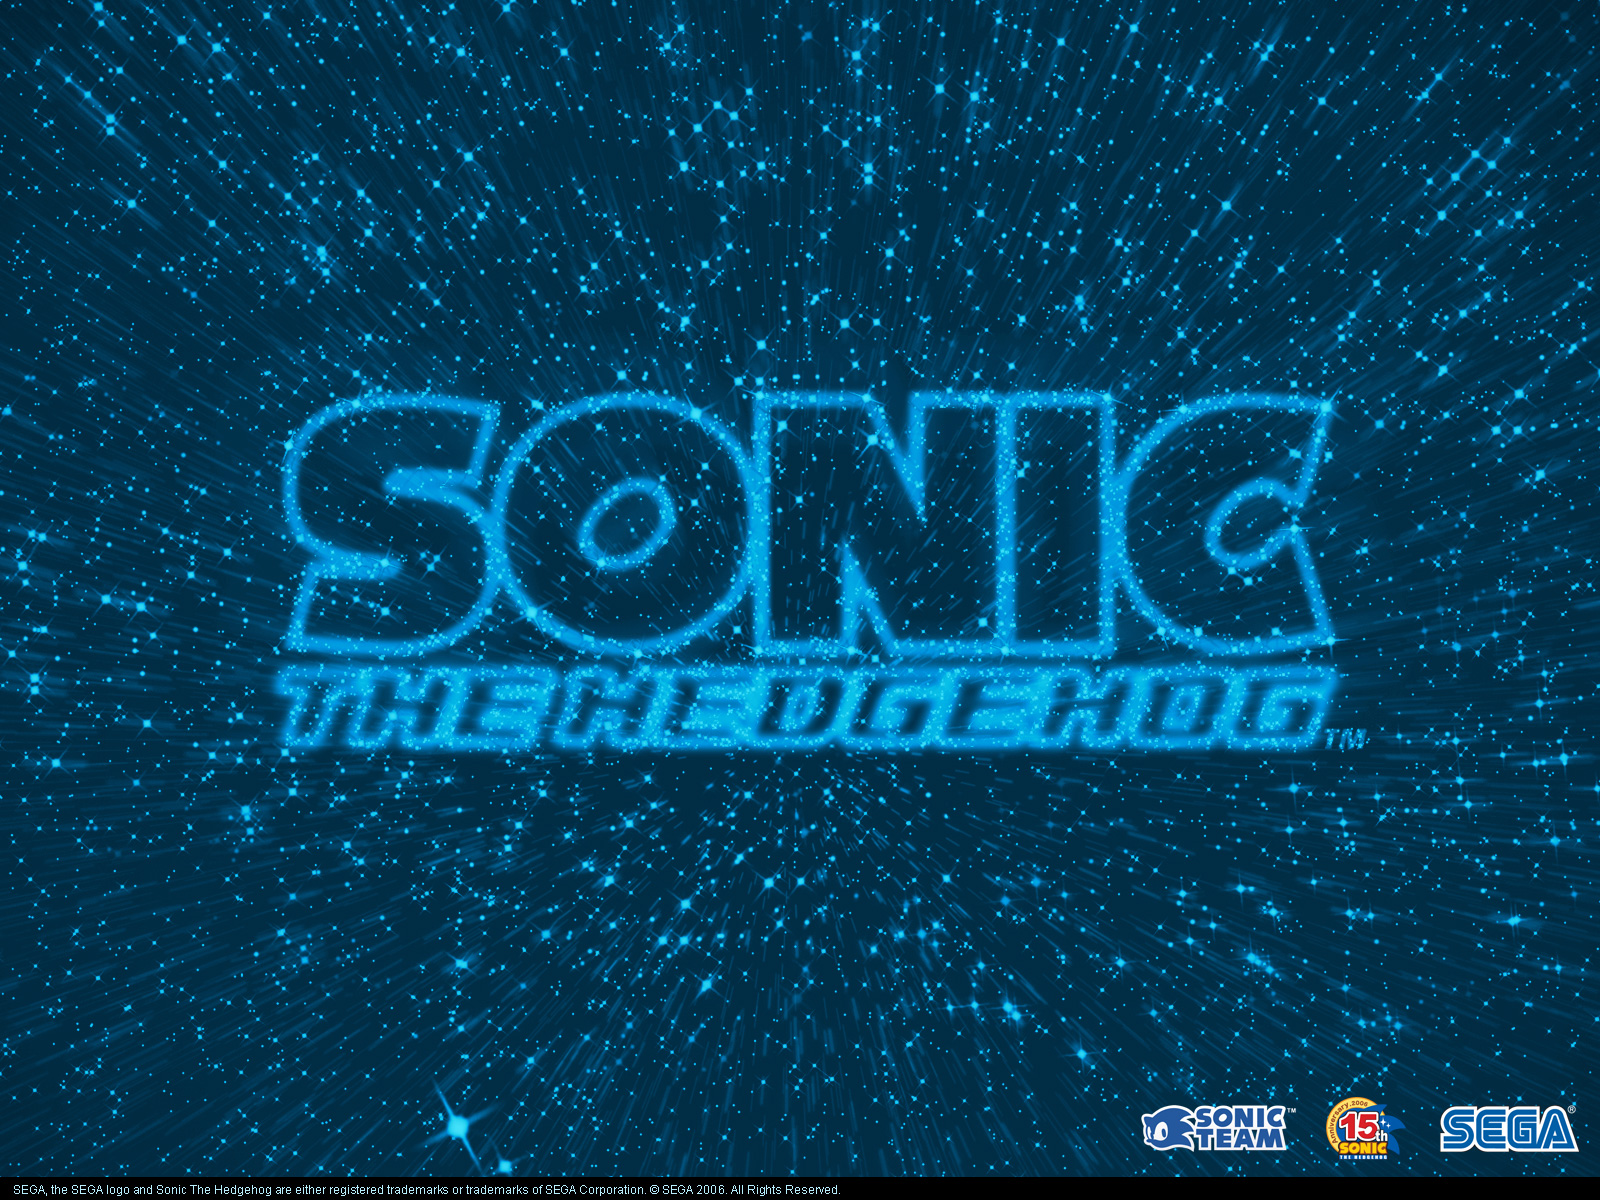 Wolfenstein Hd Wallpapers Wallpapers Sonic The Hedgehog 2006 Last Minute Continue